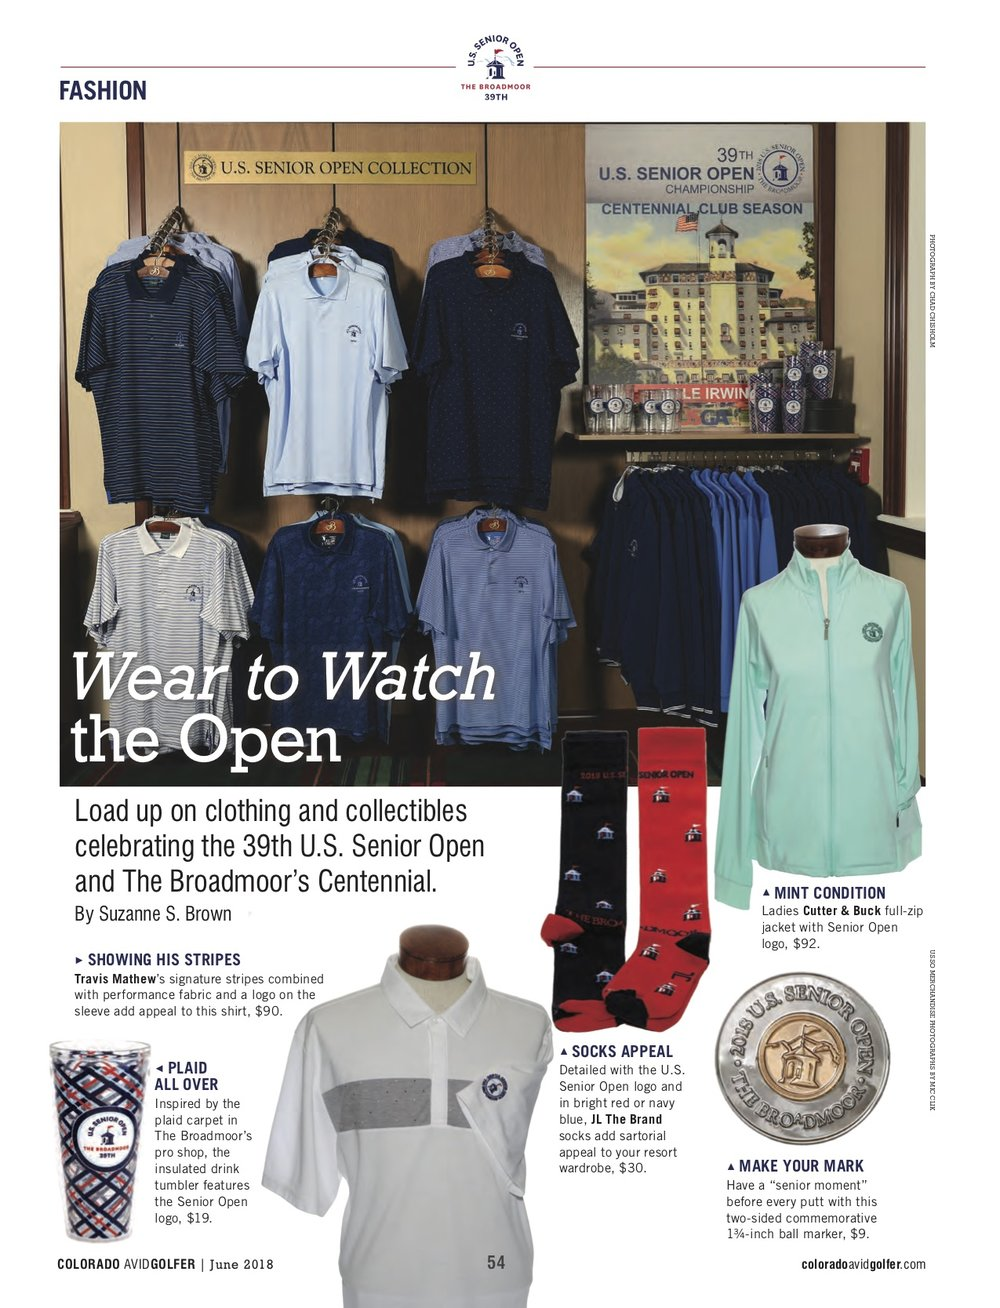 Apparel and merchandise for the U.S.Senior Open at the Broadmoor, For Colorado Avid Golfer